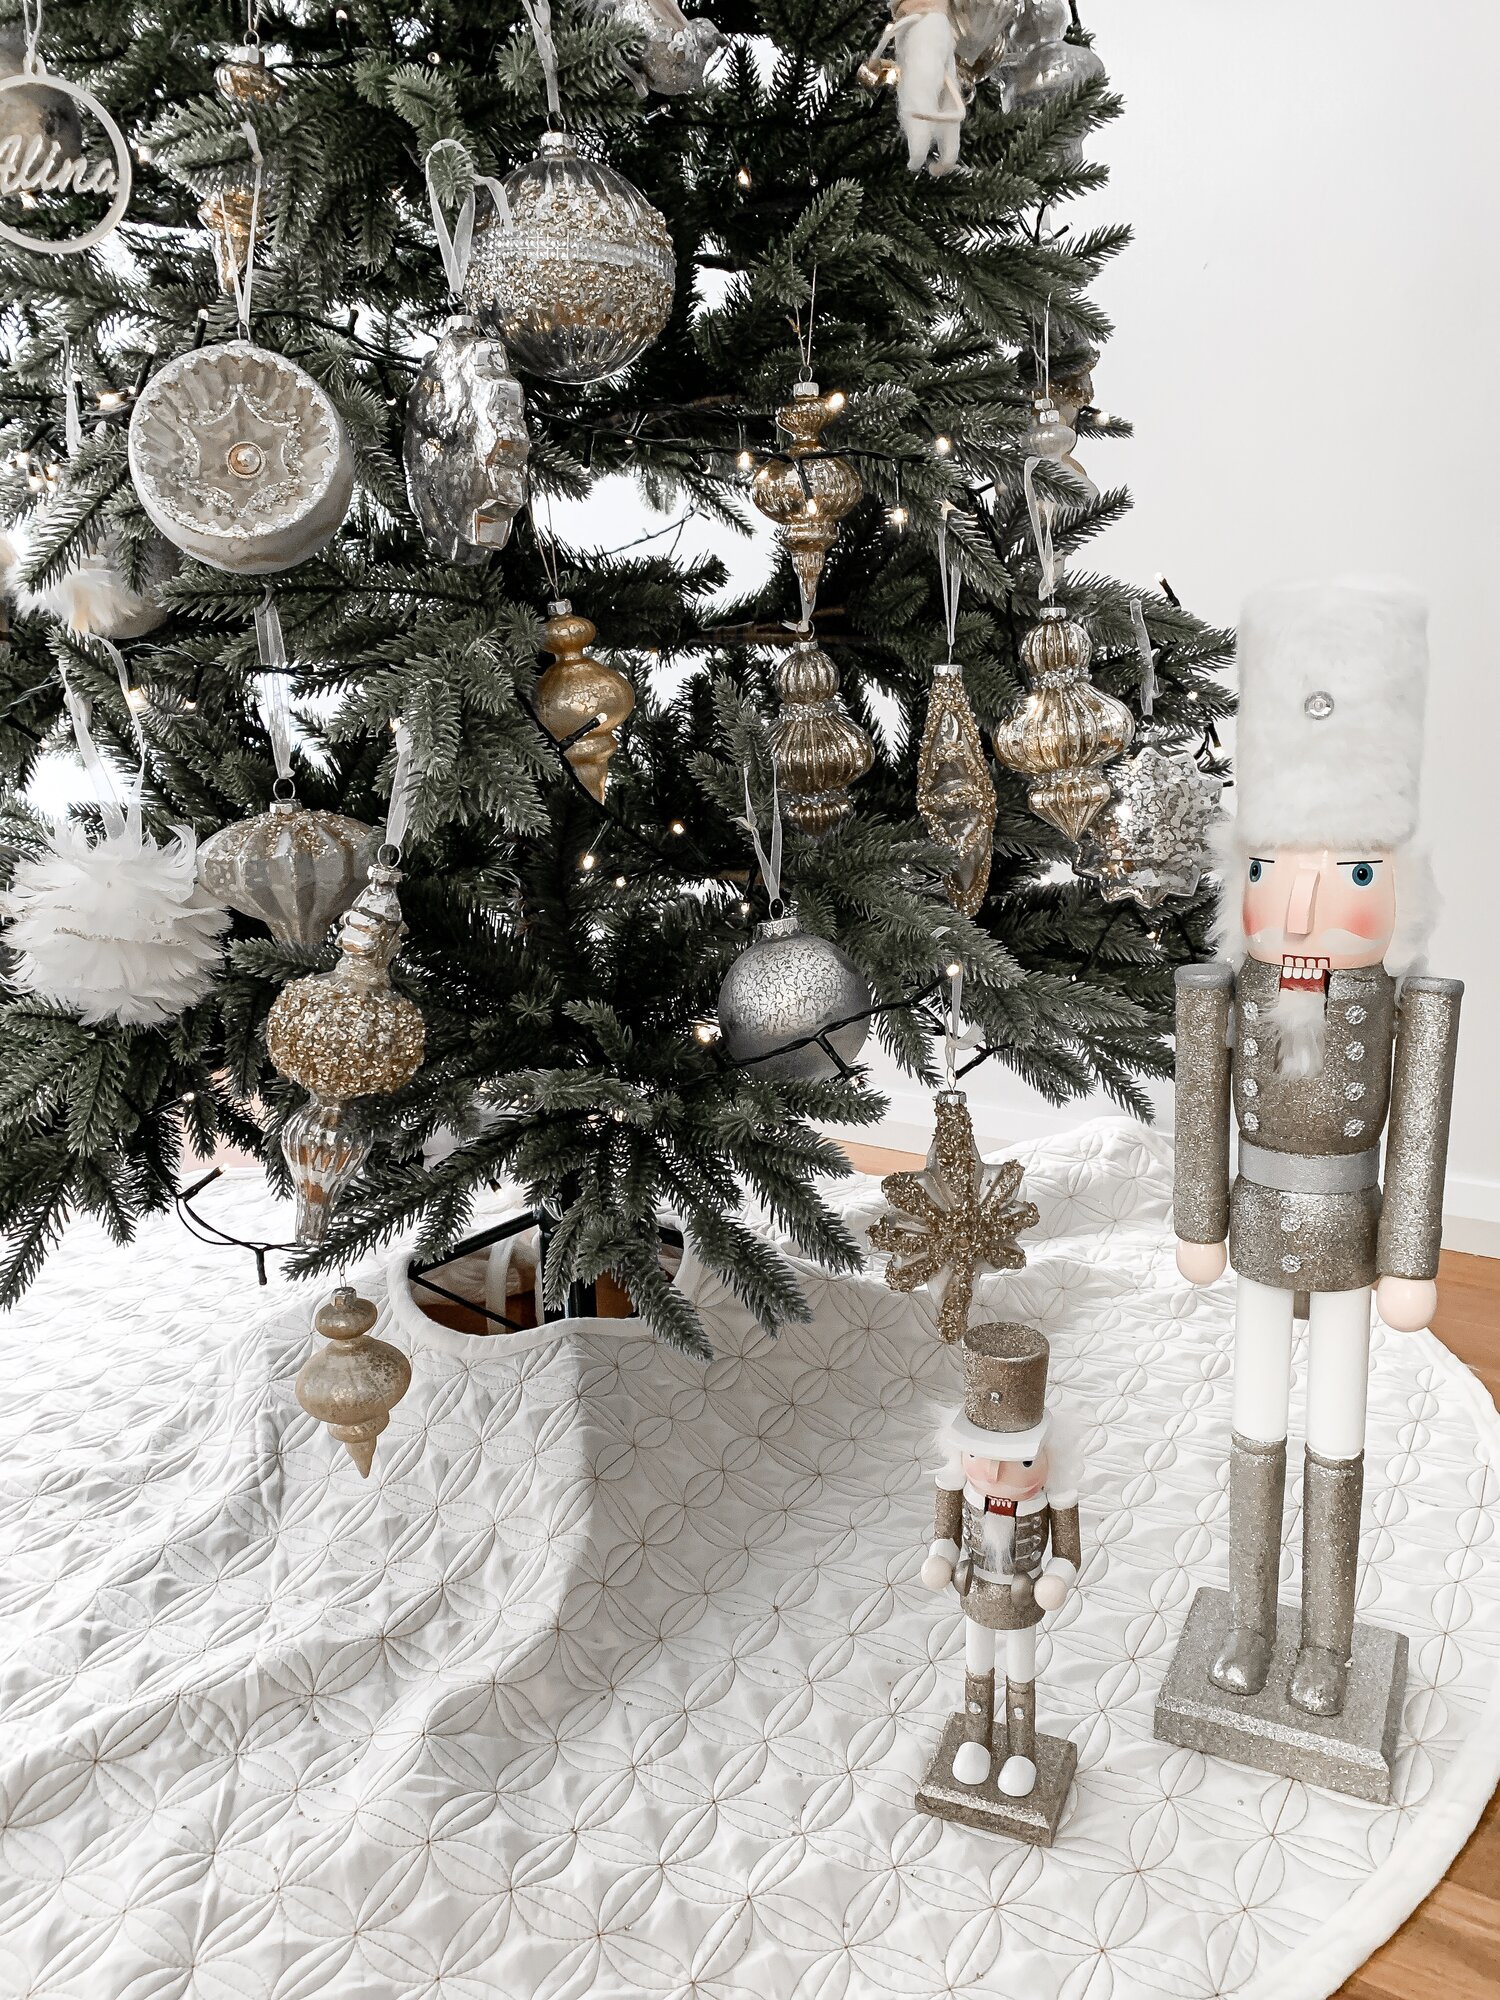 Whimsical Christmas tree theme decorating ideas